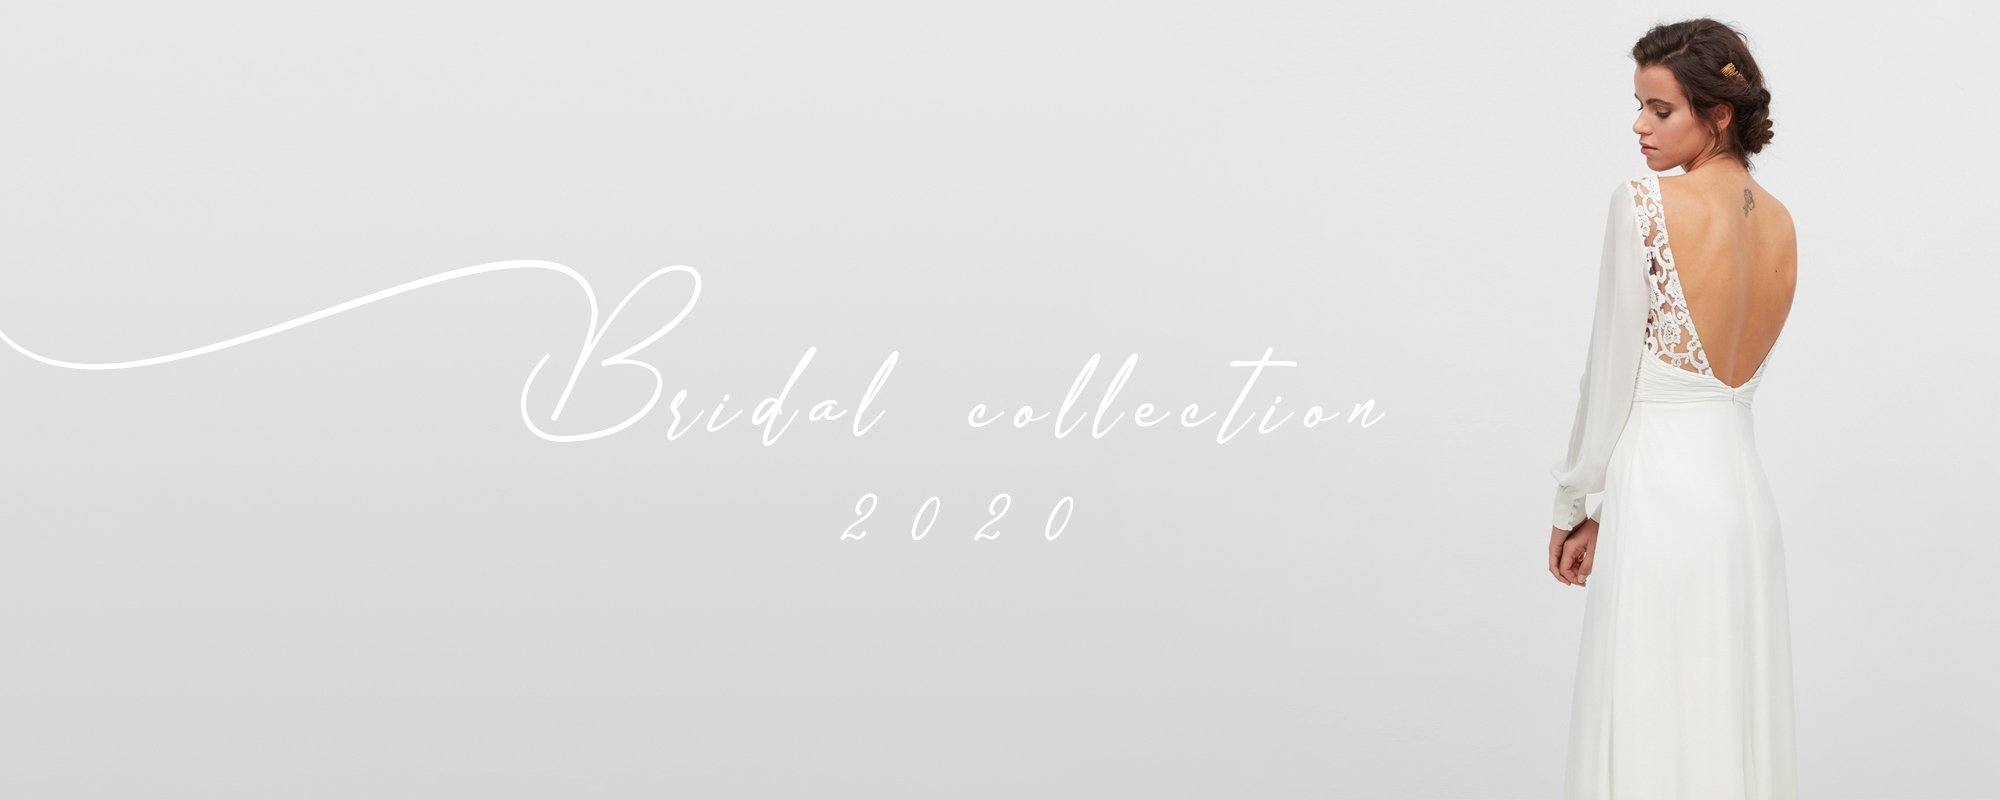 bride collection 2020